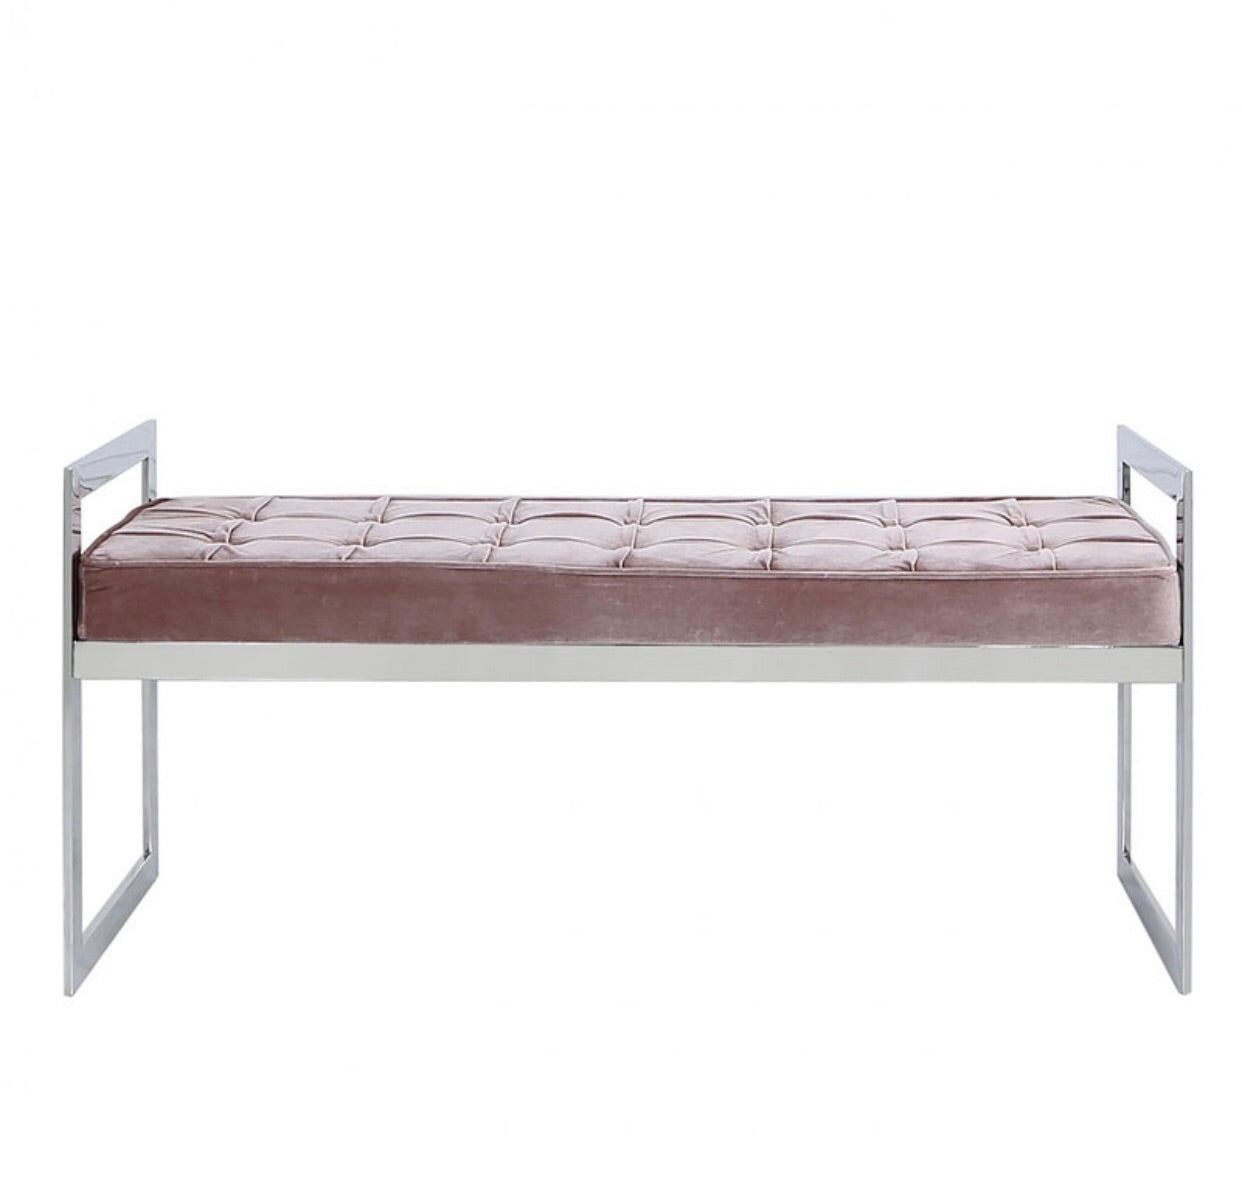 Zen Stainless Steel Bench - Blush Pink